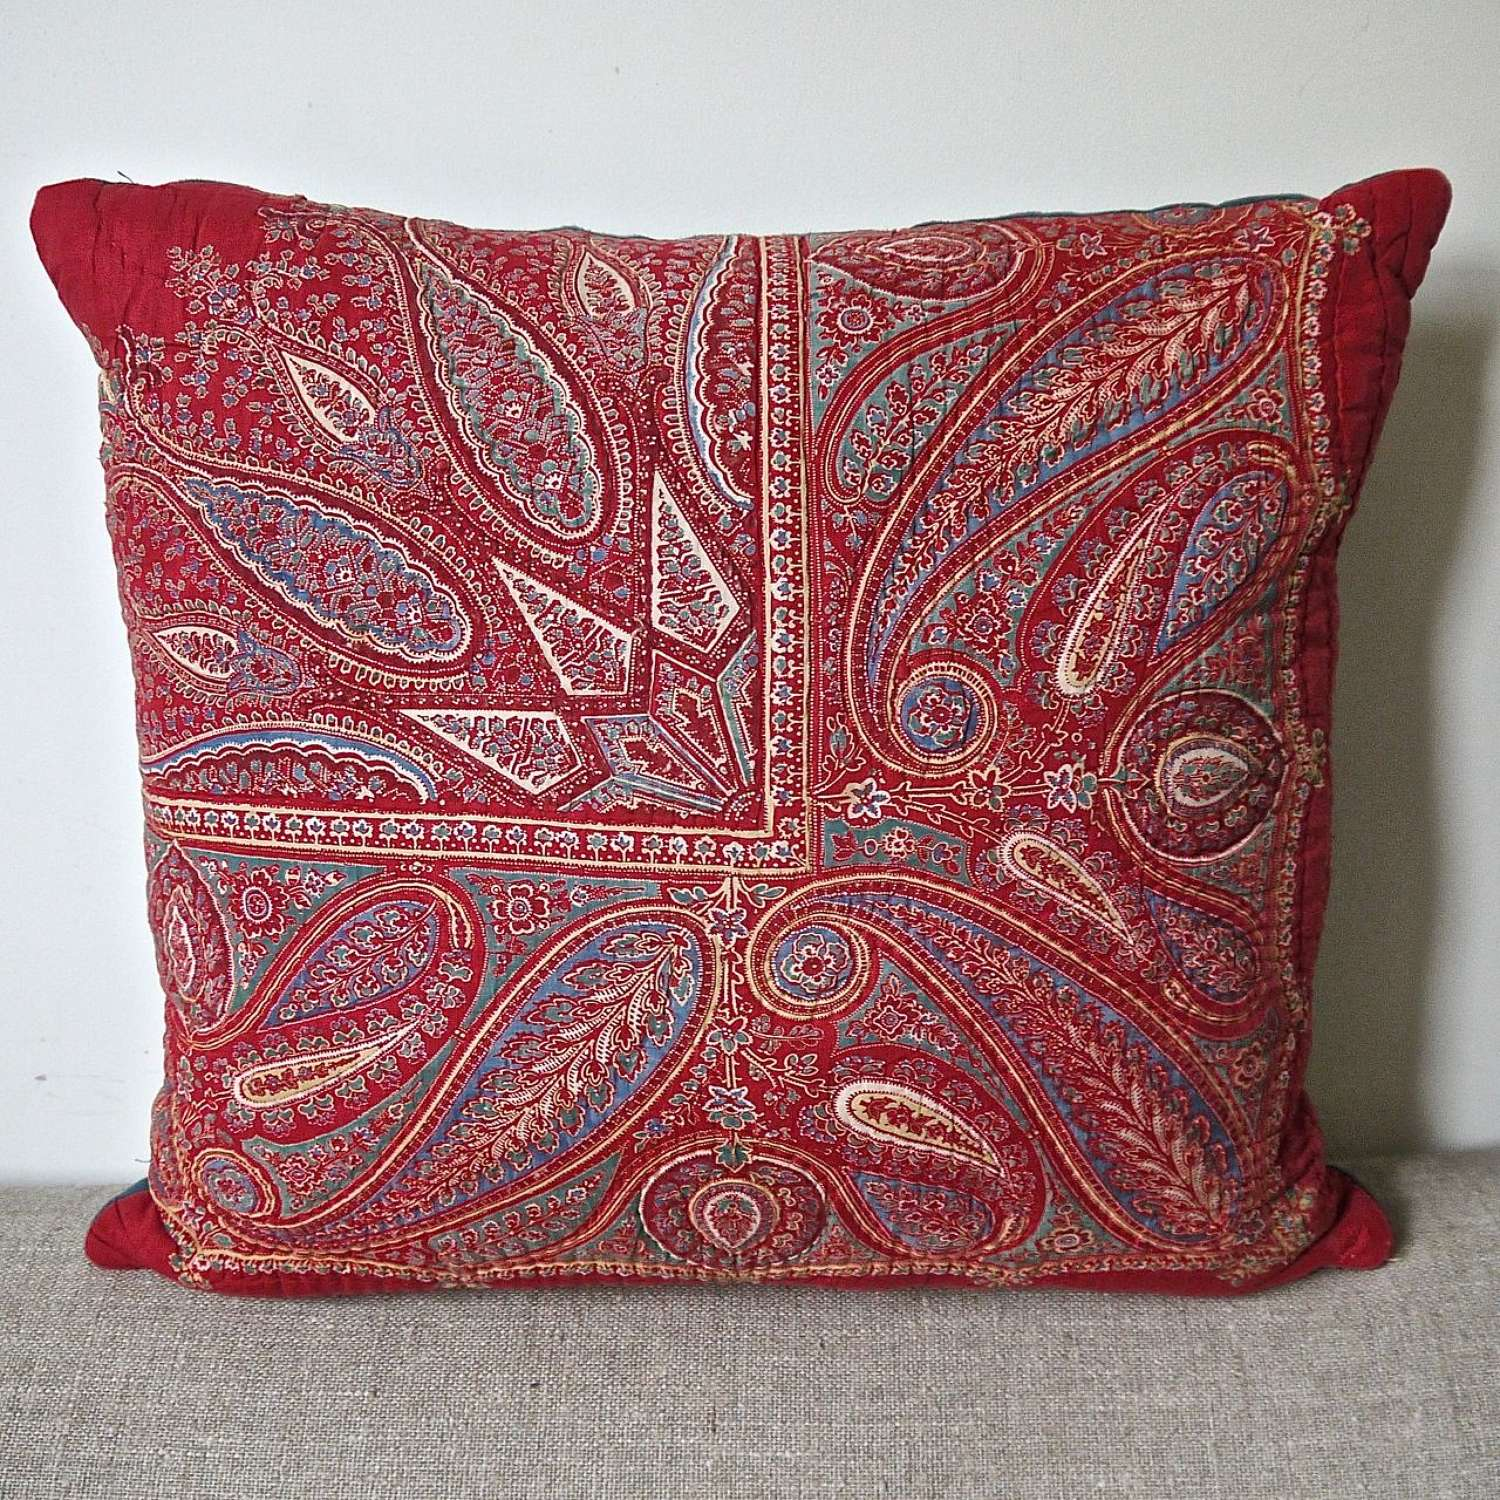 Red Paisley Blockprinted Cotton Cushion French 19th Century